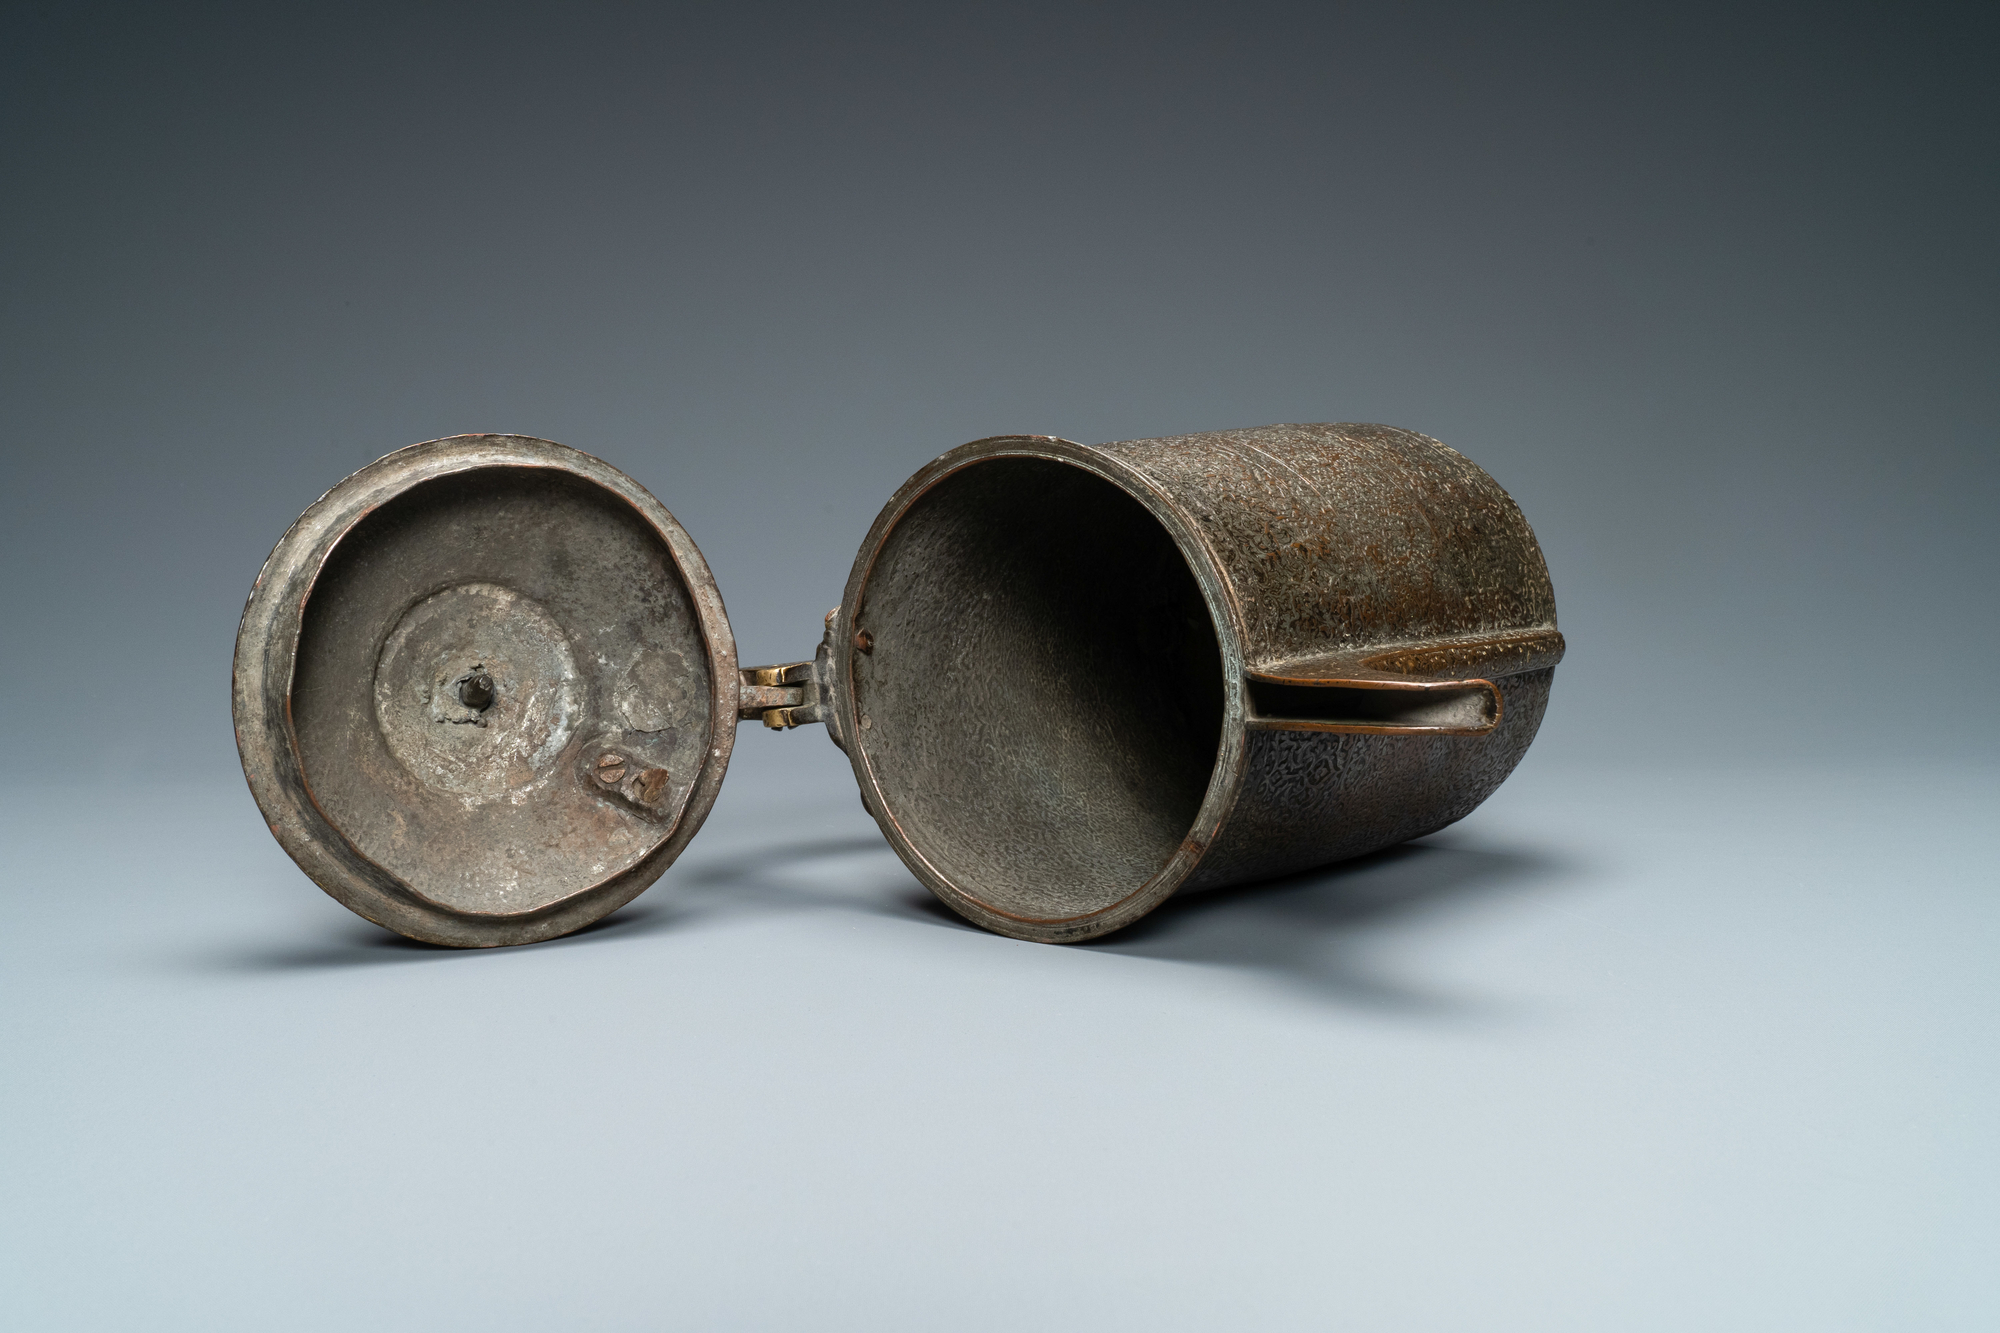 A Safavid parcel-gilt and tinned copper mug and cover, Persia, 17/18th C. - Image 6 of 7